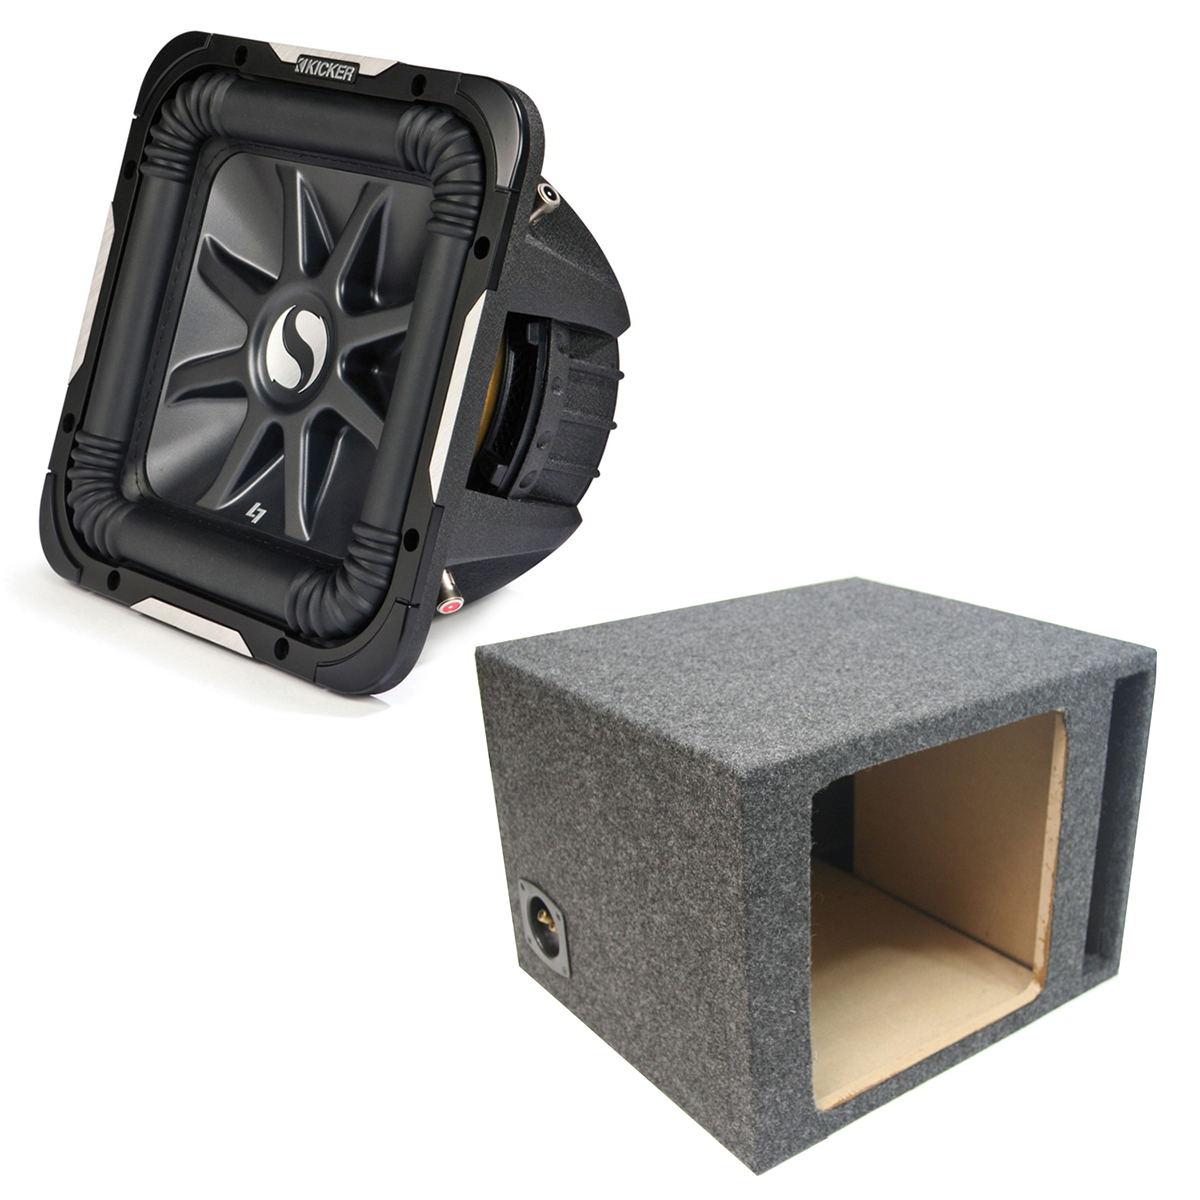 "Kicker 11S15L74 Solobaric L7 Subwoofer Single 15"" Vented Sub Enclosure Box New"